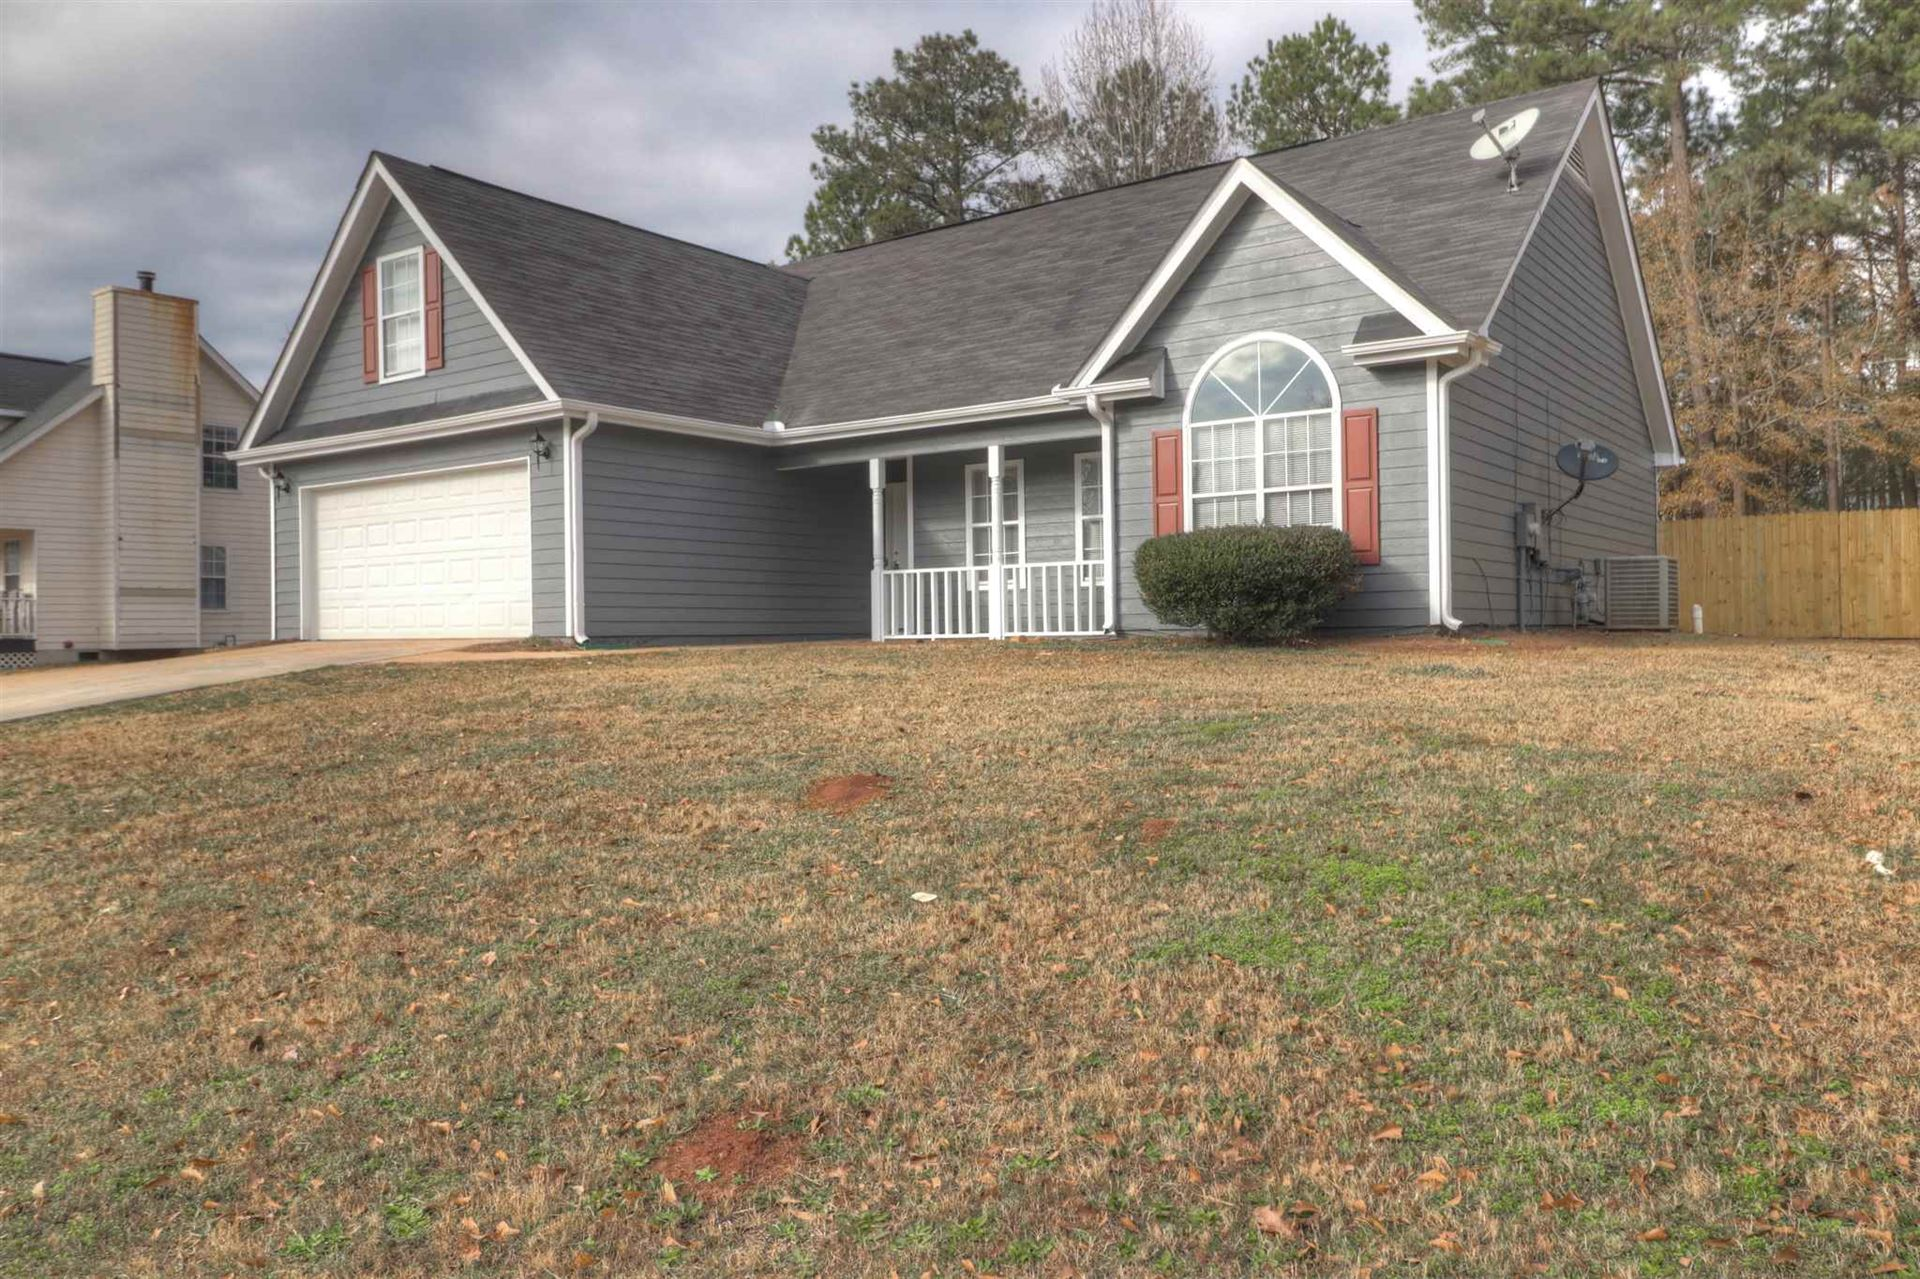 119 Chariot Dr, Griffin, GA 30224 - #: 8835951